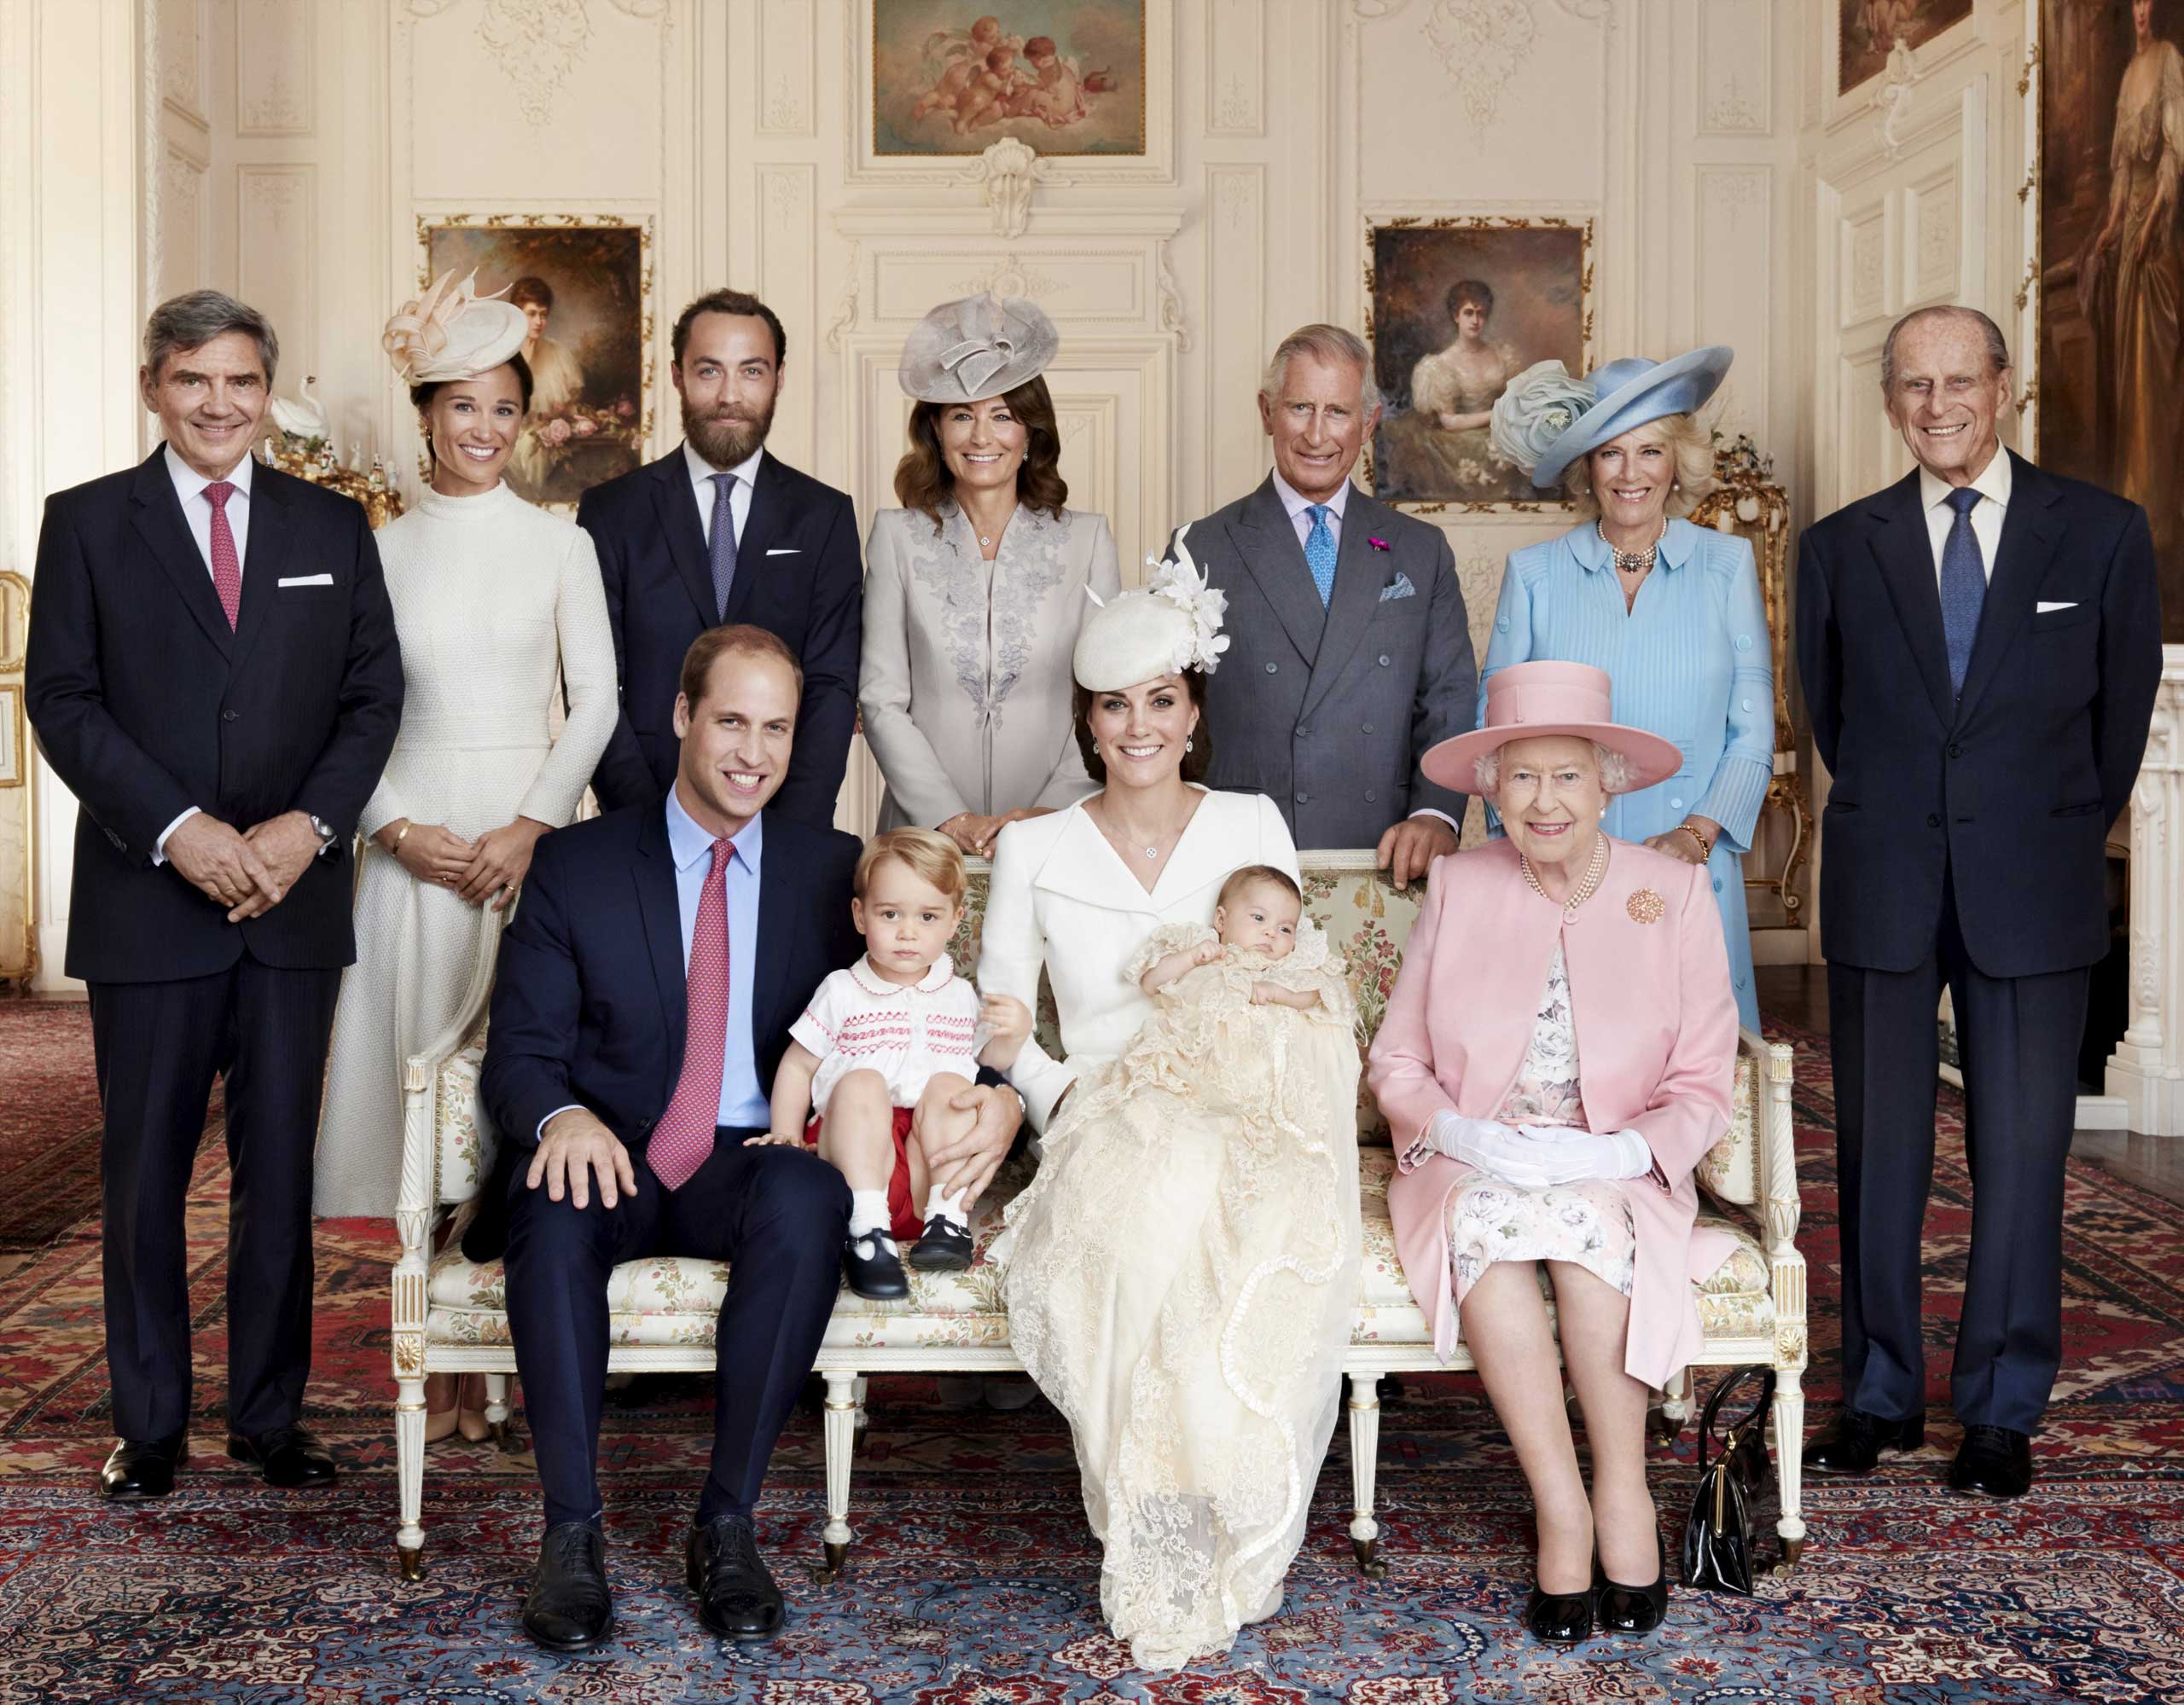 Britain's Prince William, Prince George, Catherine, Duchess of Cambridge, Princess Charlotte, Queen Elizabeth, andMichael Middleton, Pippa Middleton, James Middleton, Carole Middleton, Prince Charles, Camilla, Duchess of Cornwall, and Prince Philip,  pose for a photo in the Drawing Room of Sandringham House, following the christening of Princess Charlotte.